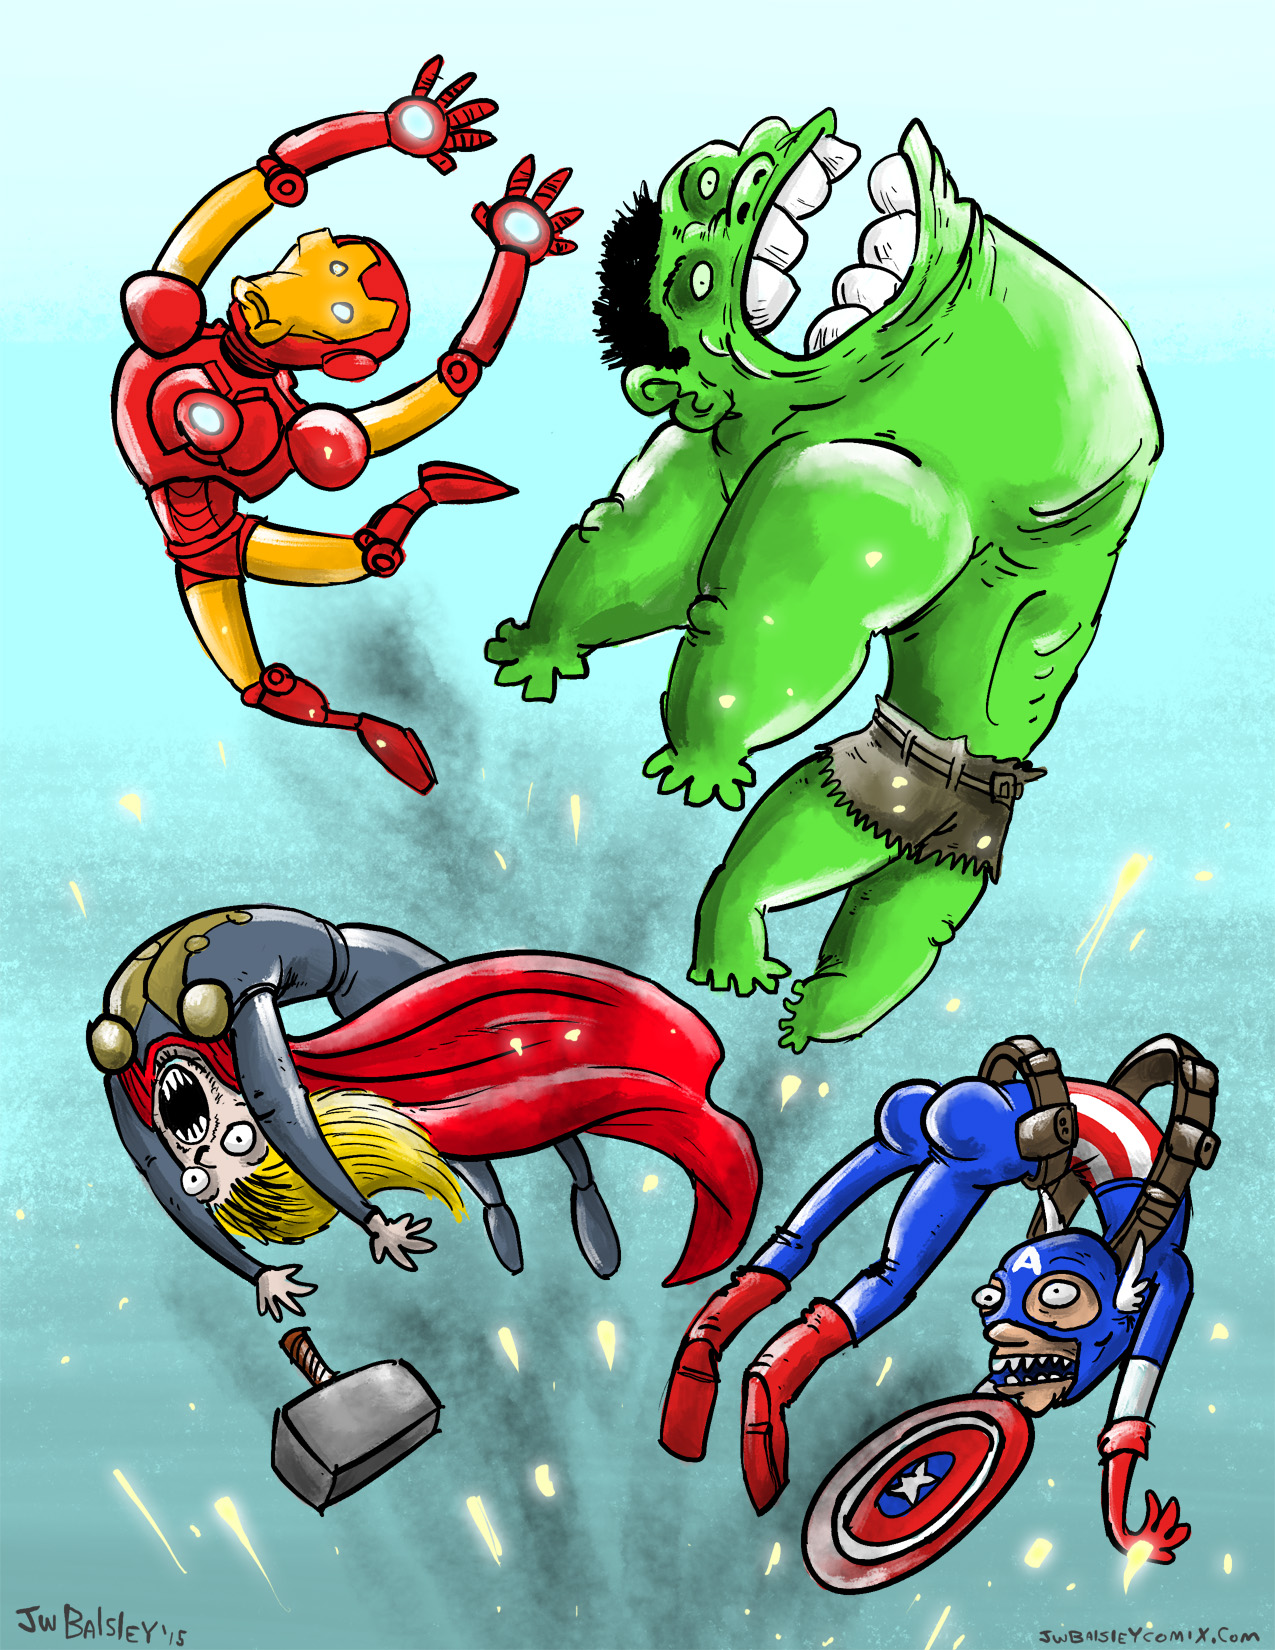 Avengers in action!